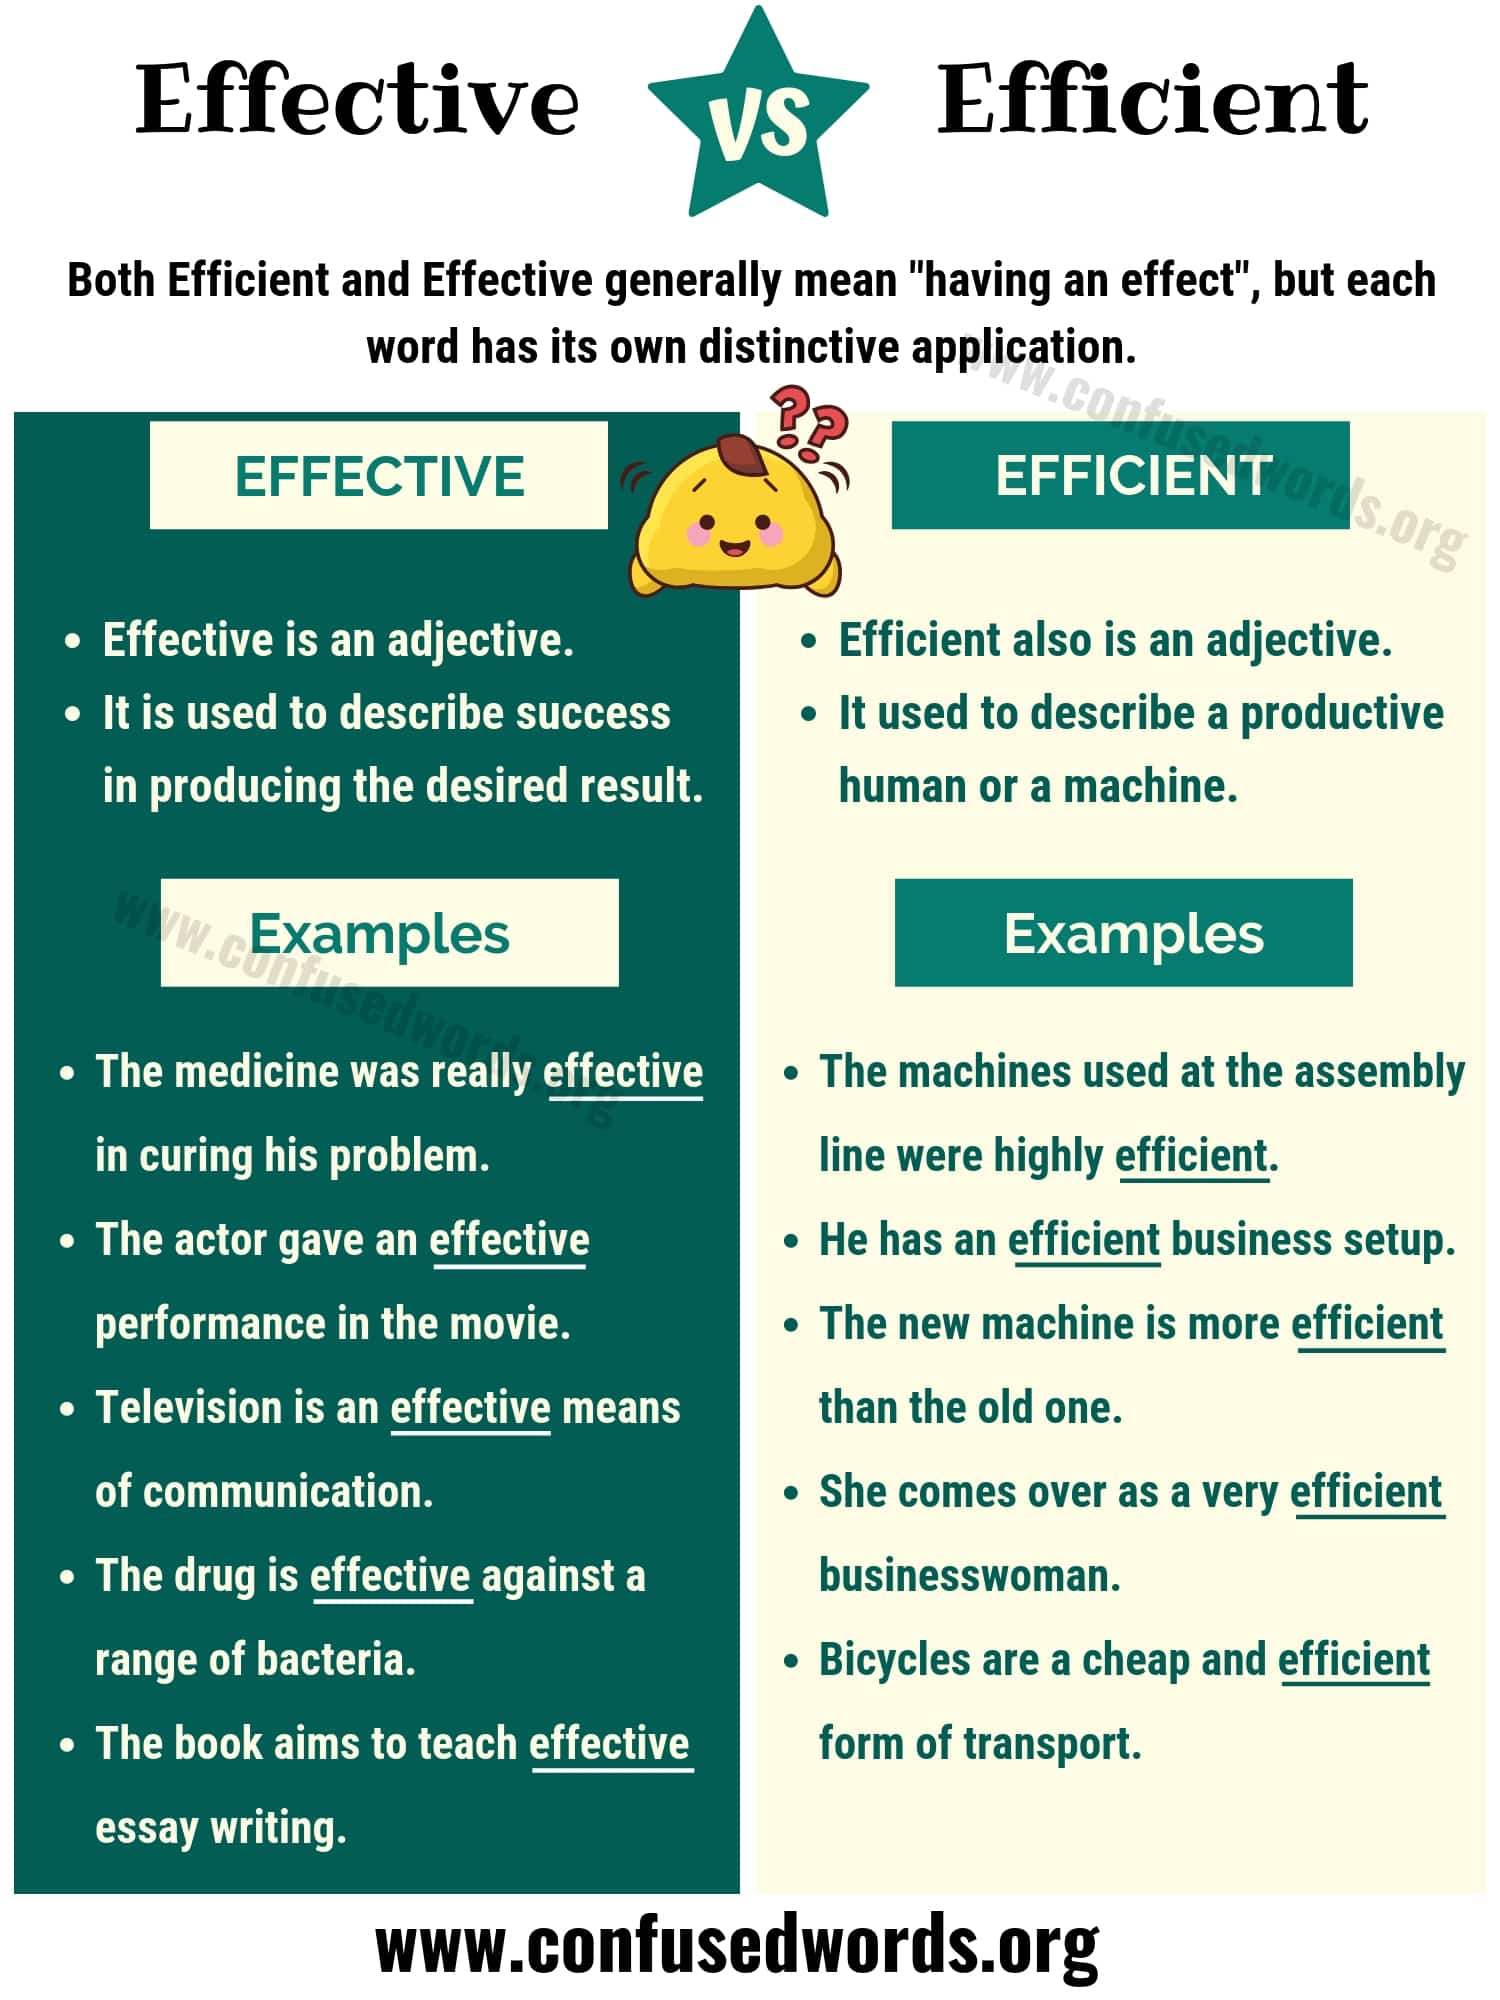 Effective vs Efficient